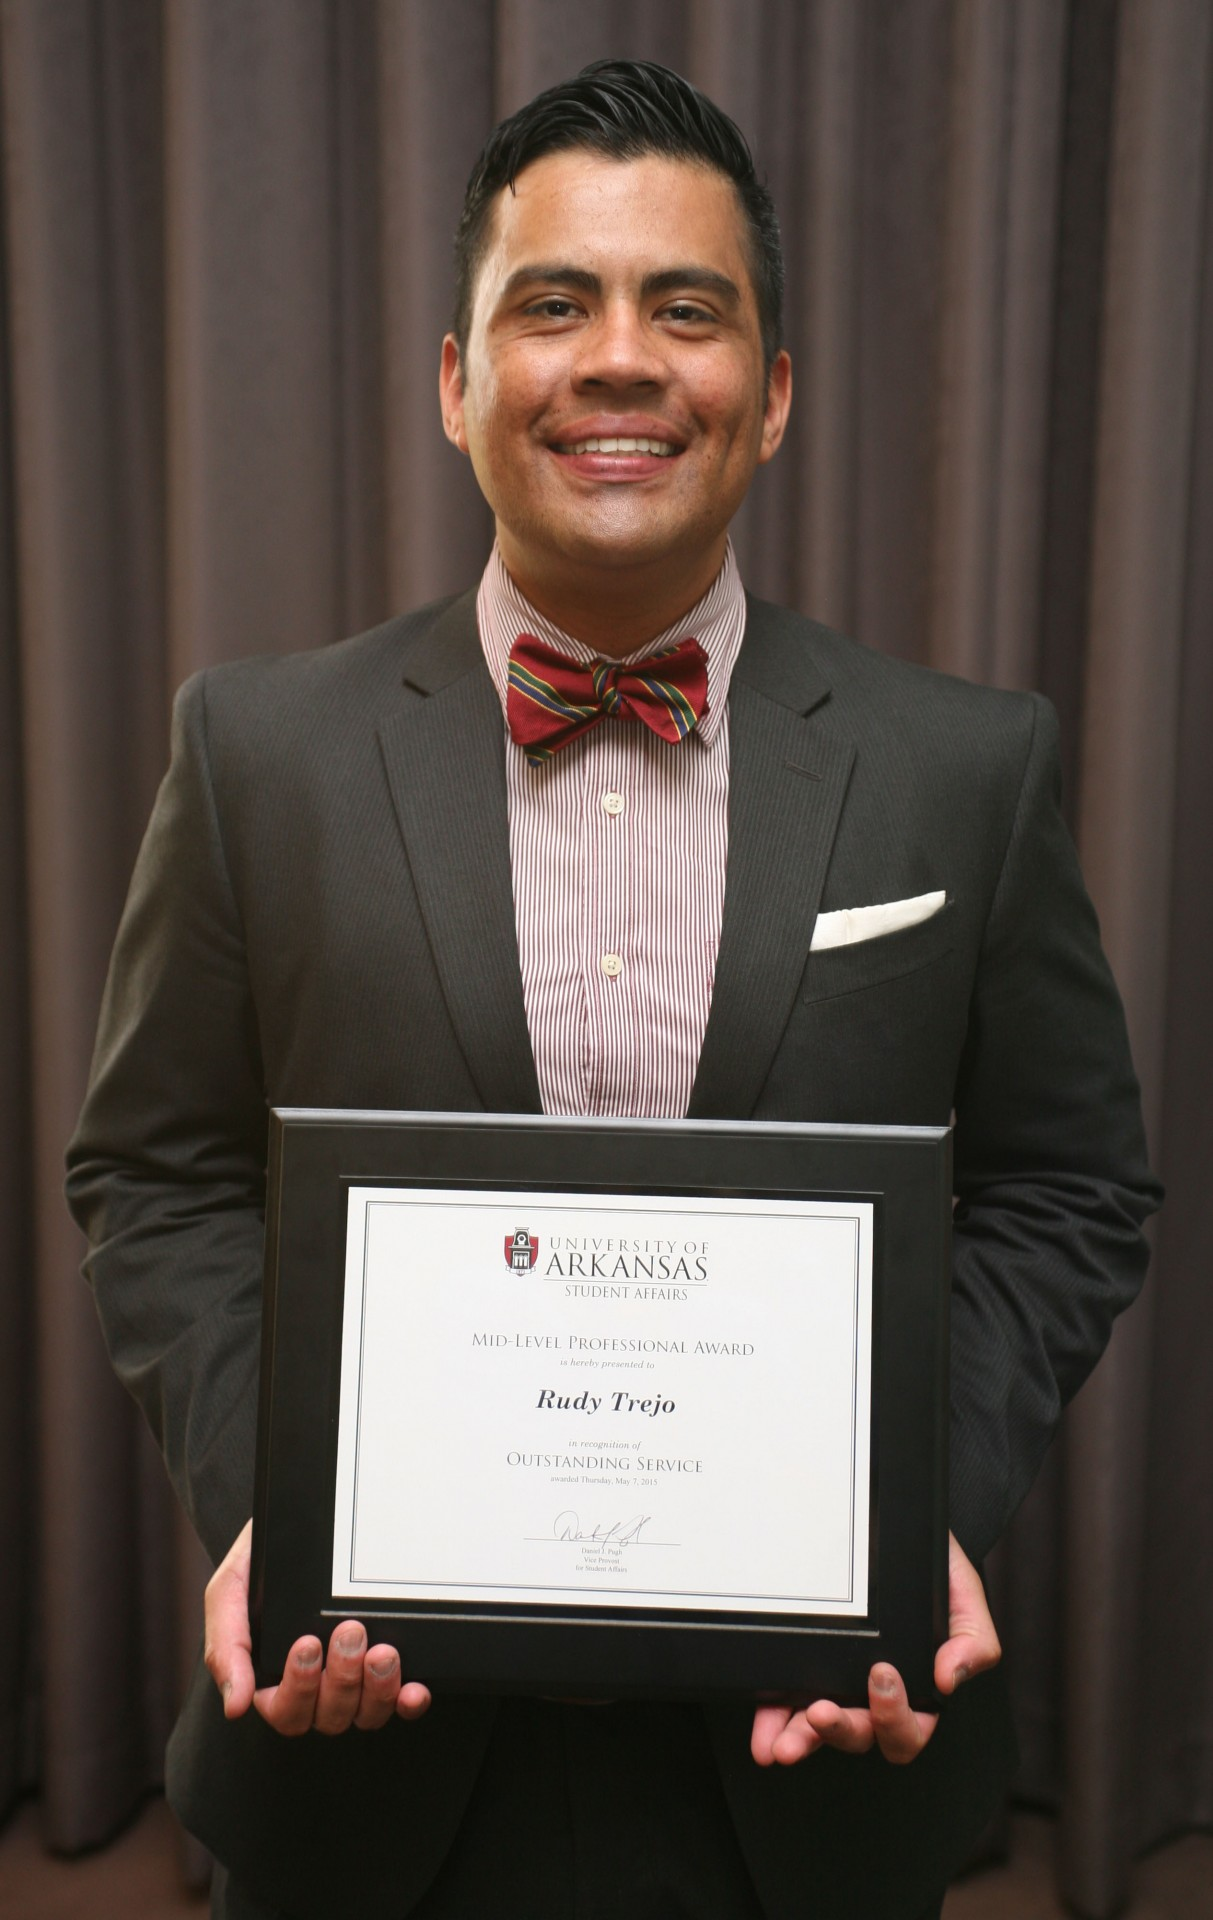 Rudy Trejo received the Outstanding Mid-Level Professional/Rising Star for 2014-2015.